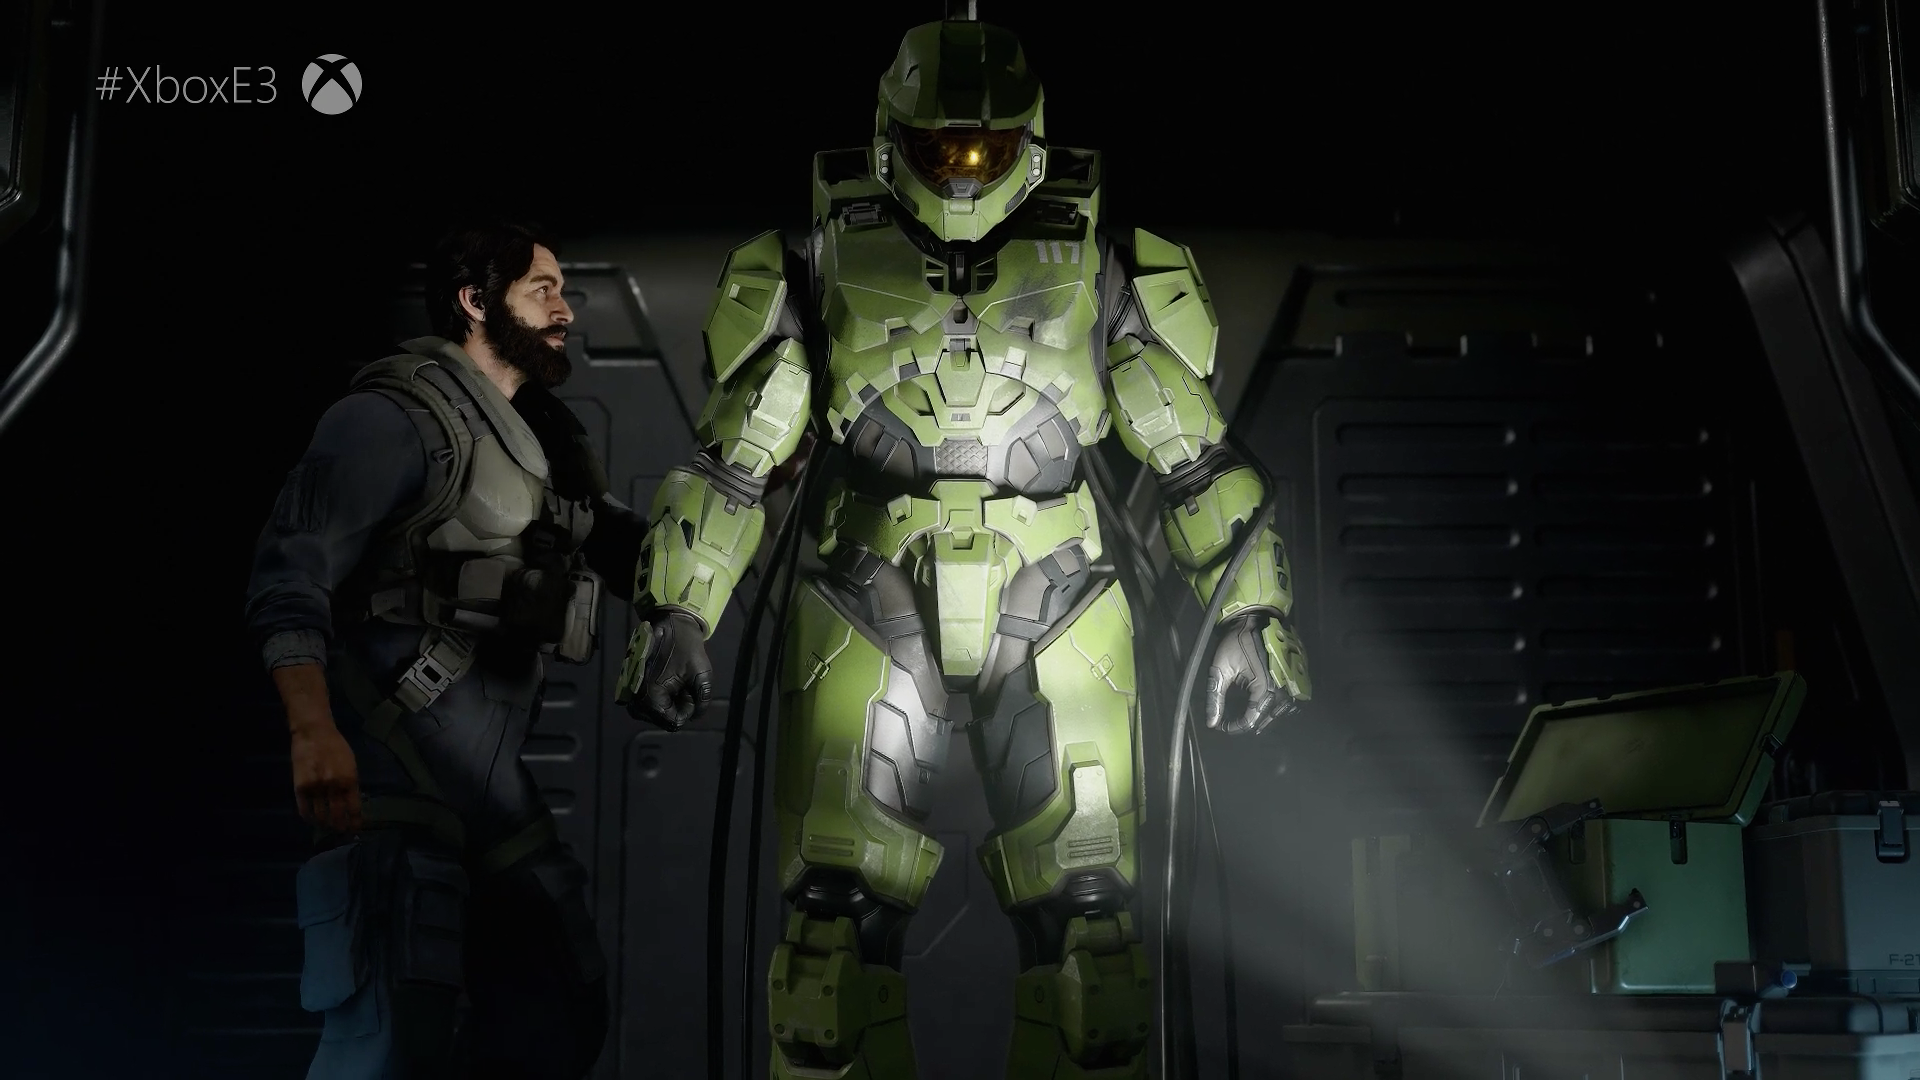 A Brand New Look At Halo Infinite, Which Will Be An Xbox Scarlett Launch Title